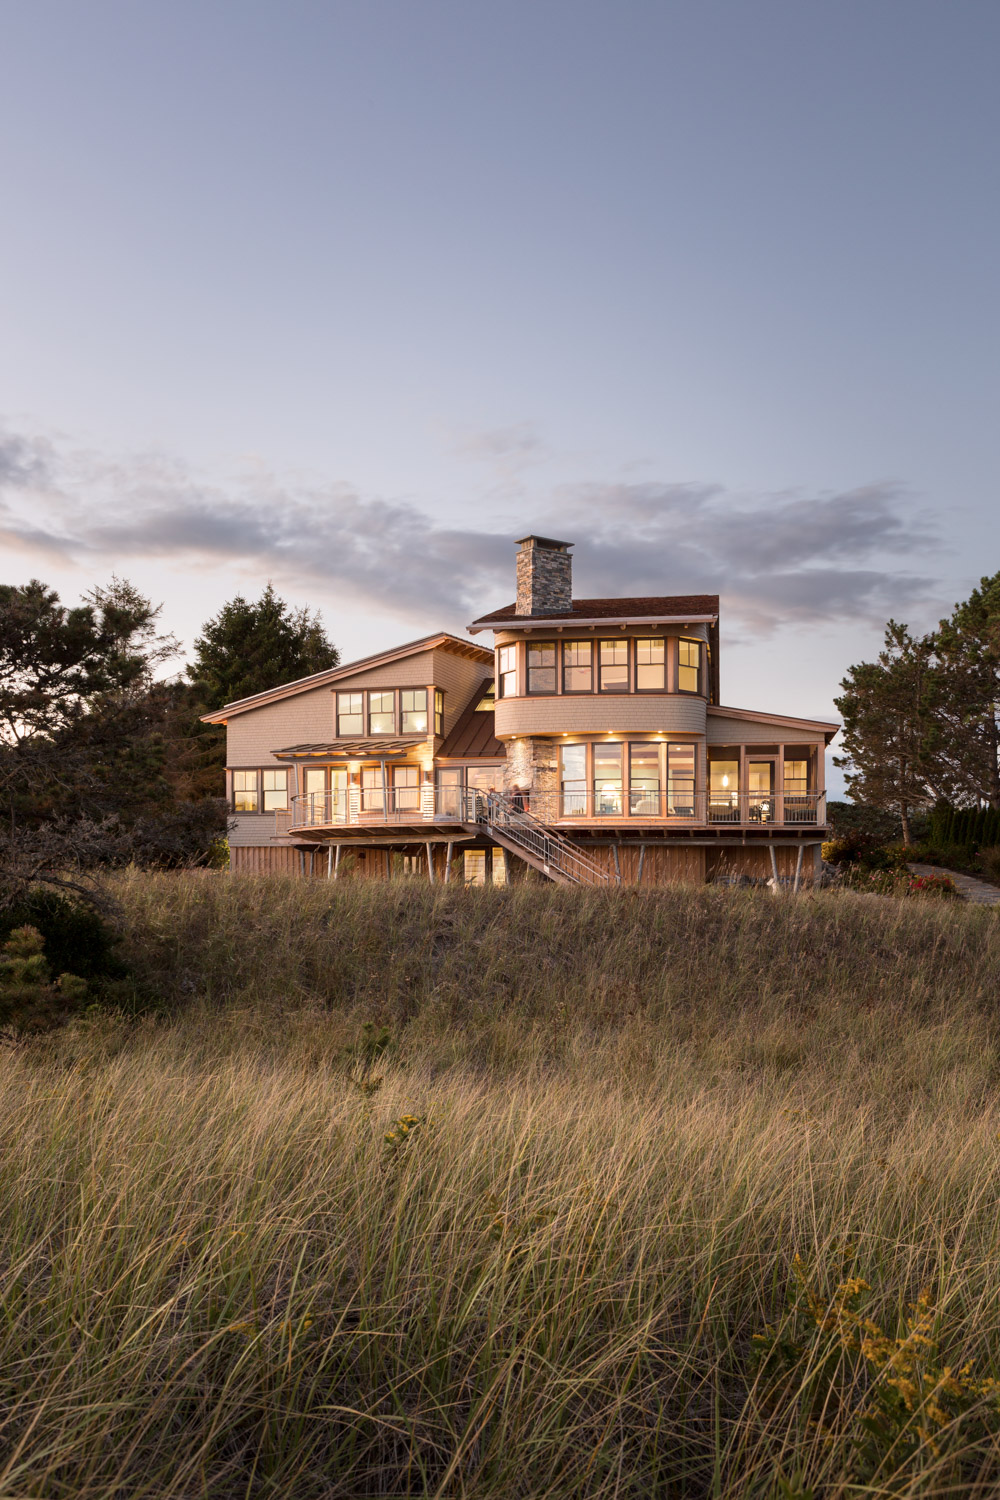 Beachfront Residence at Dusk